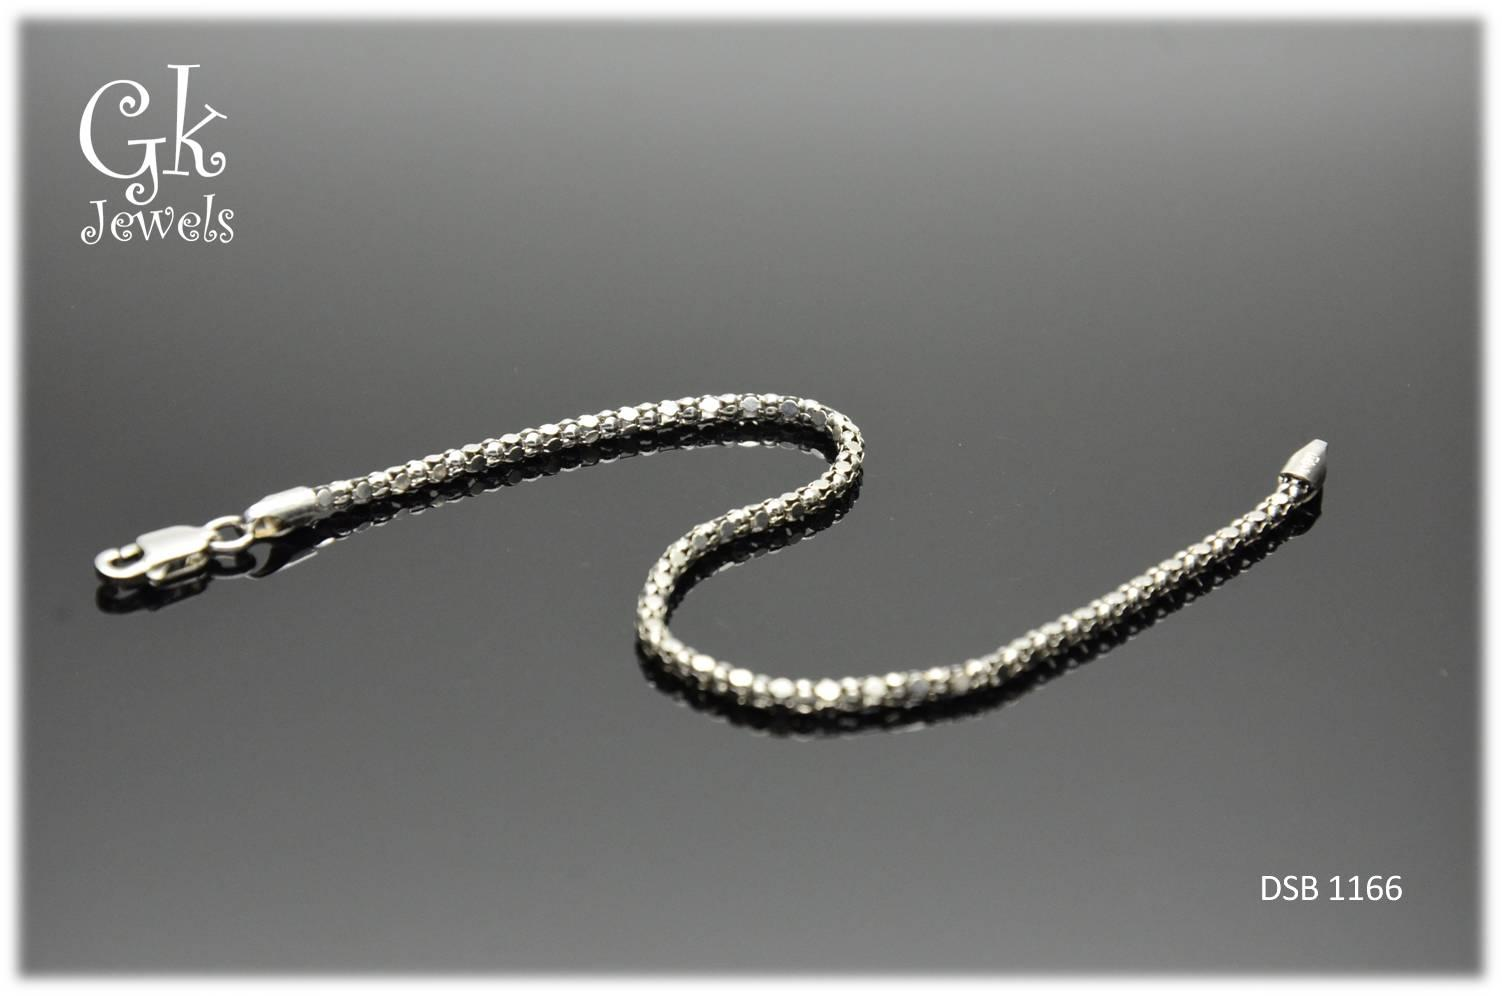 White Gold On 925 Silver Bracelet DSB 1166 (thick:2mm)